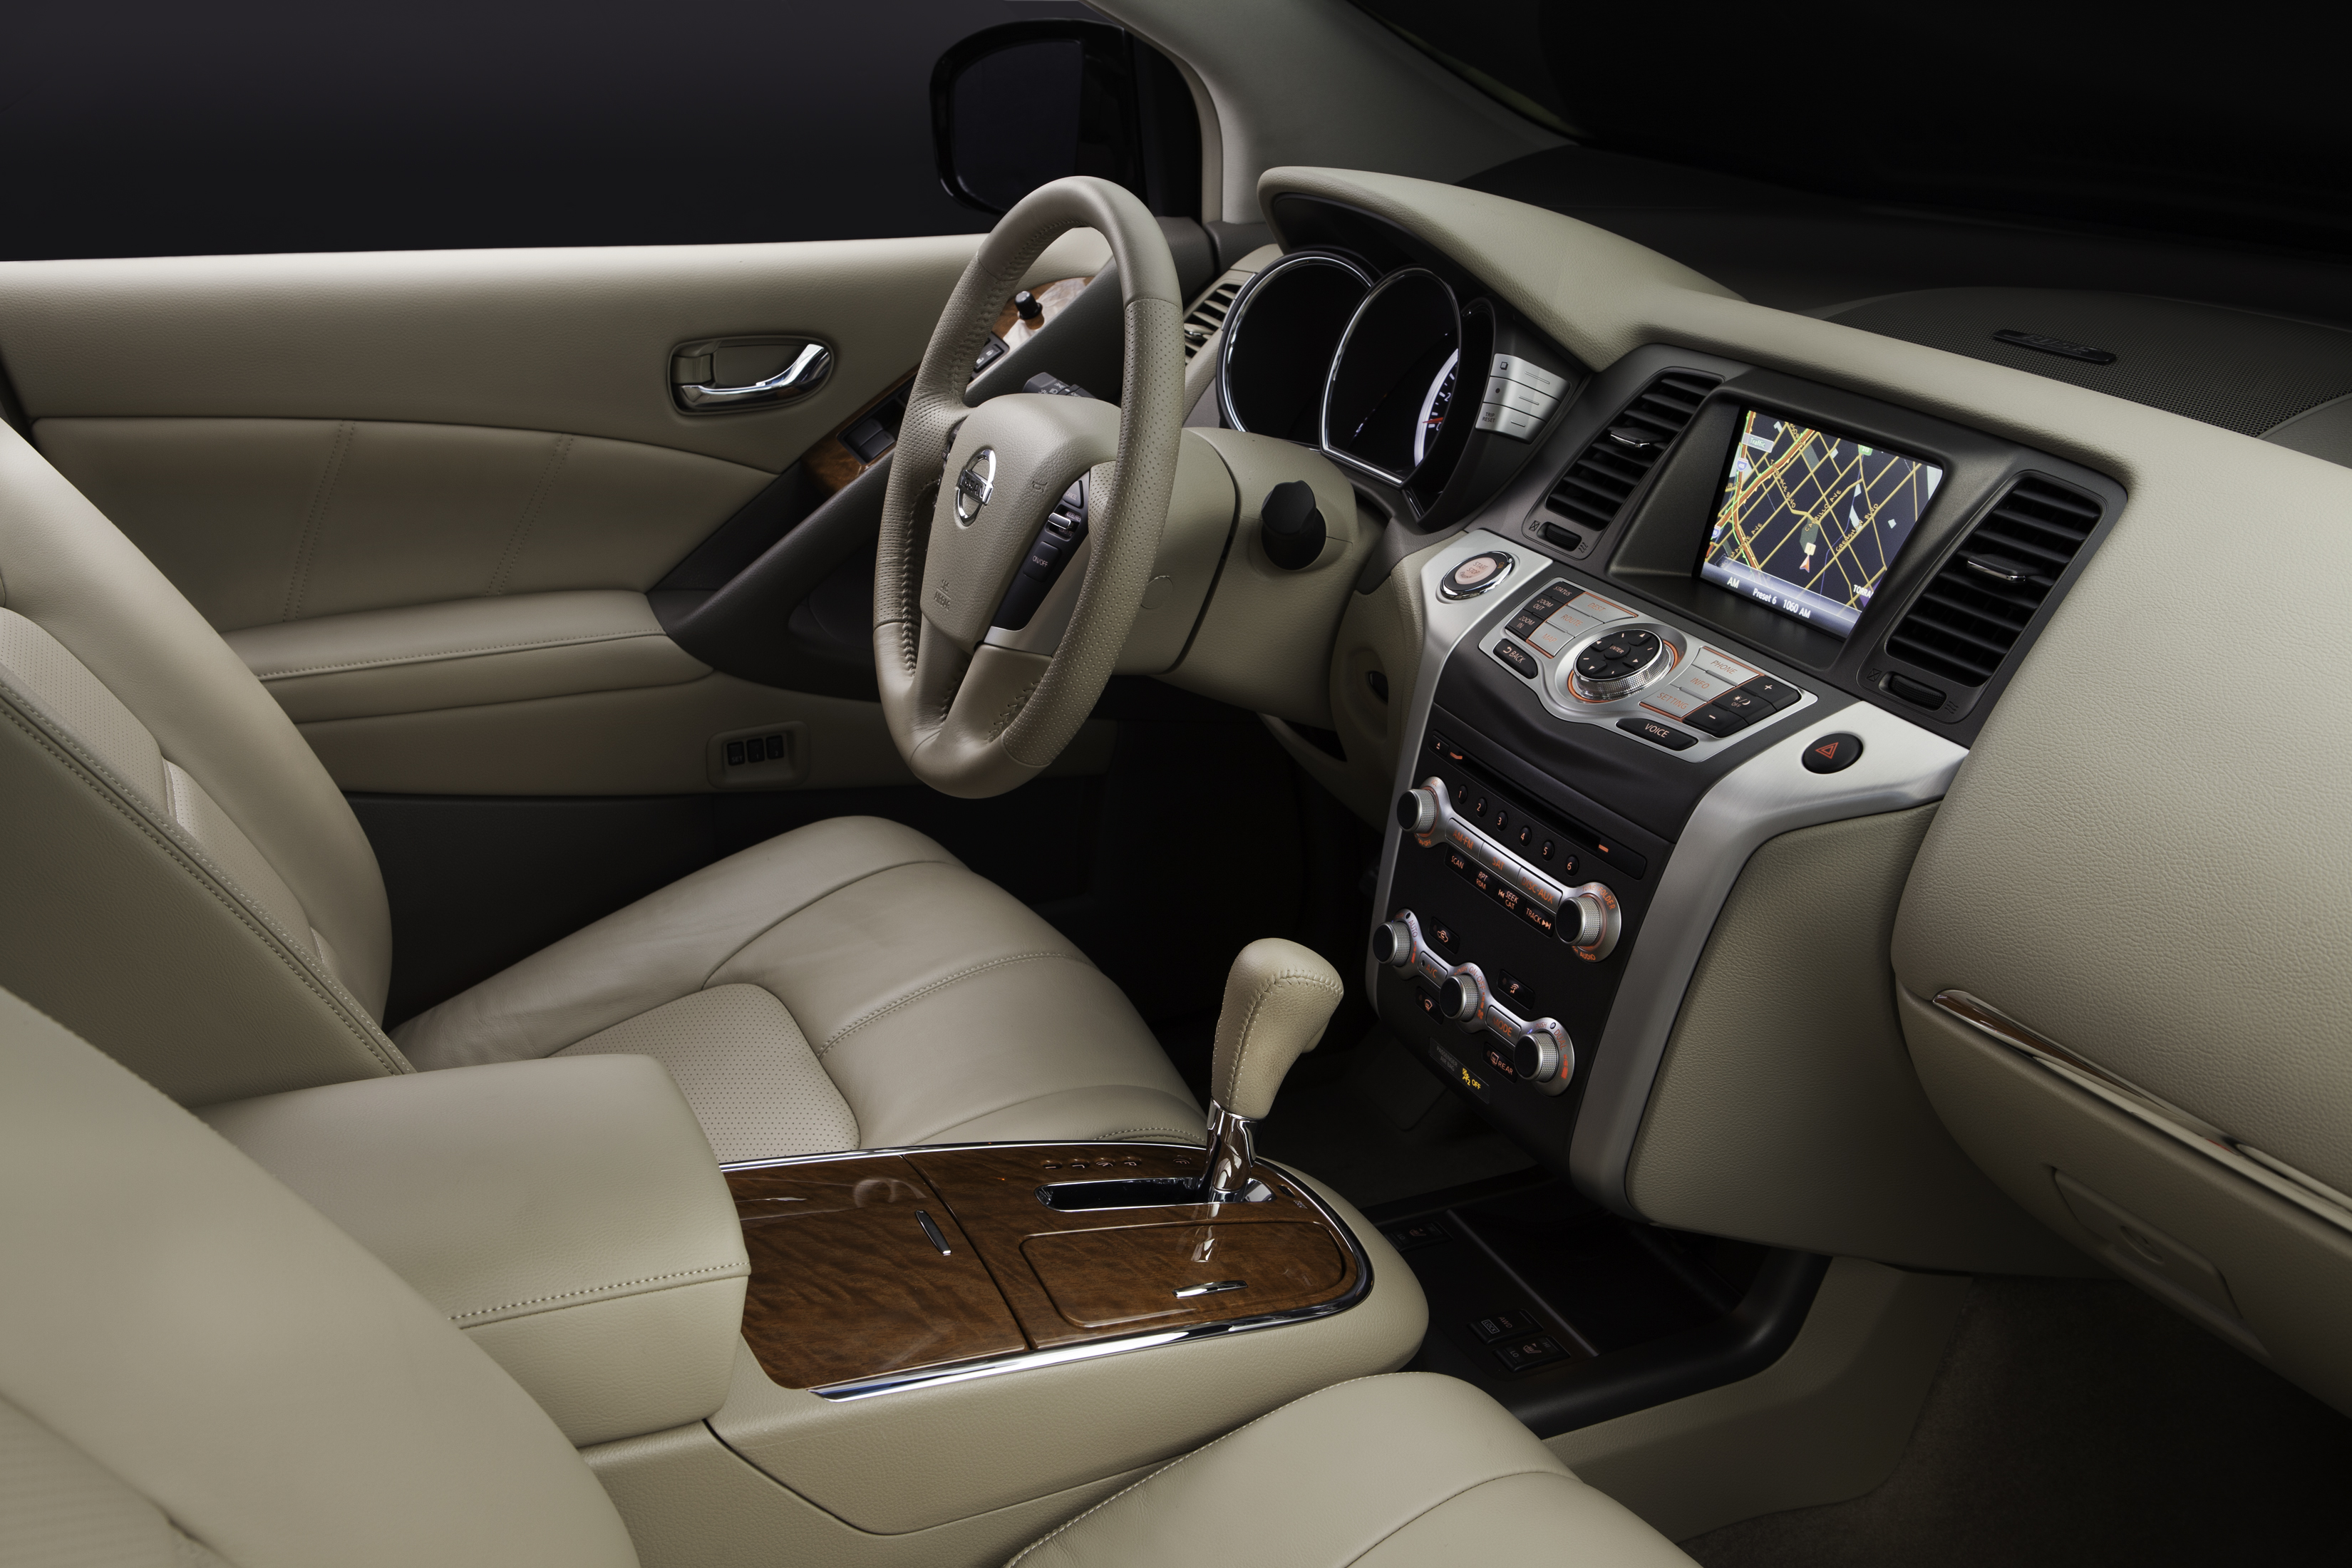 Announced 2011 nissan murano road reality by john suit source nissan vanachro Image collections